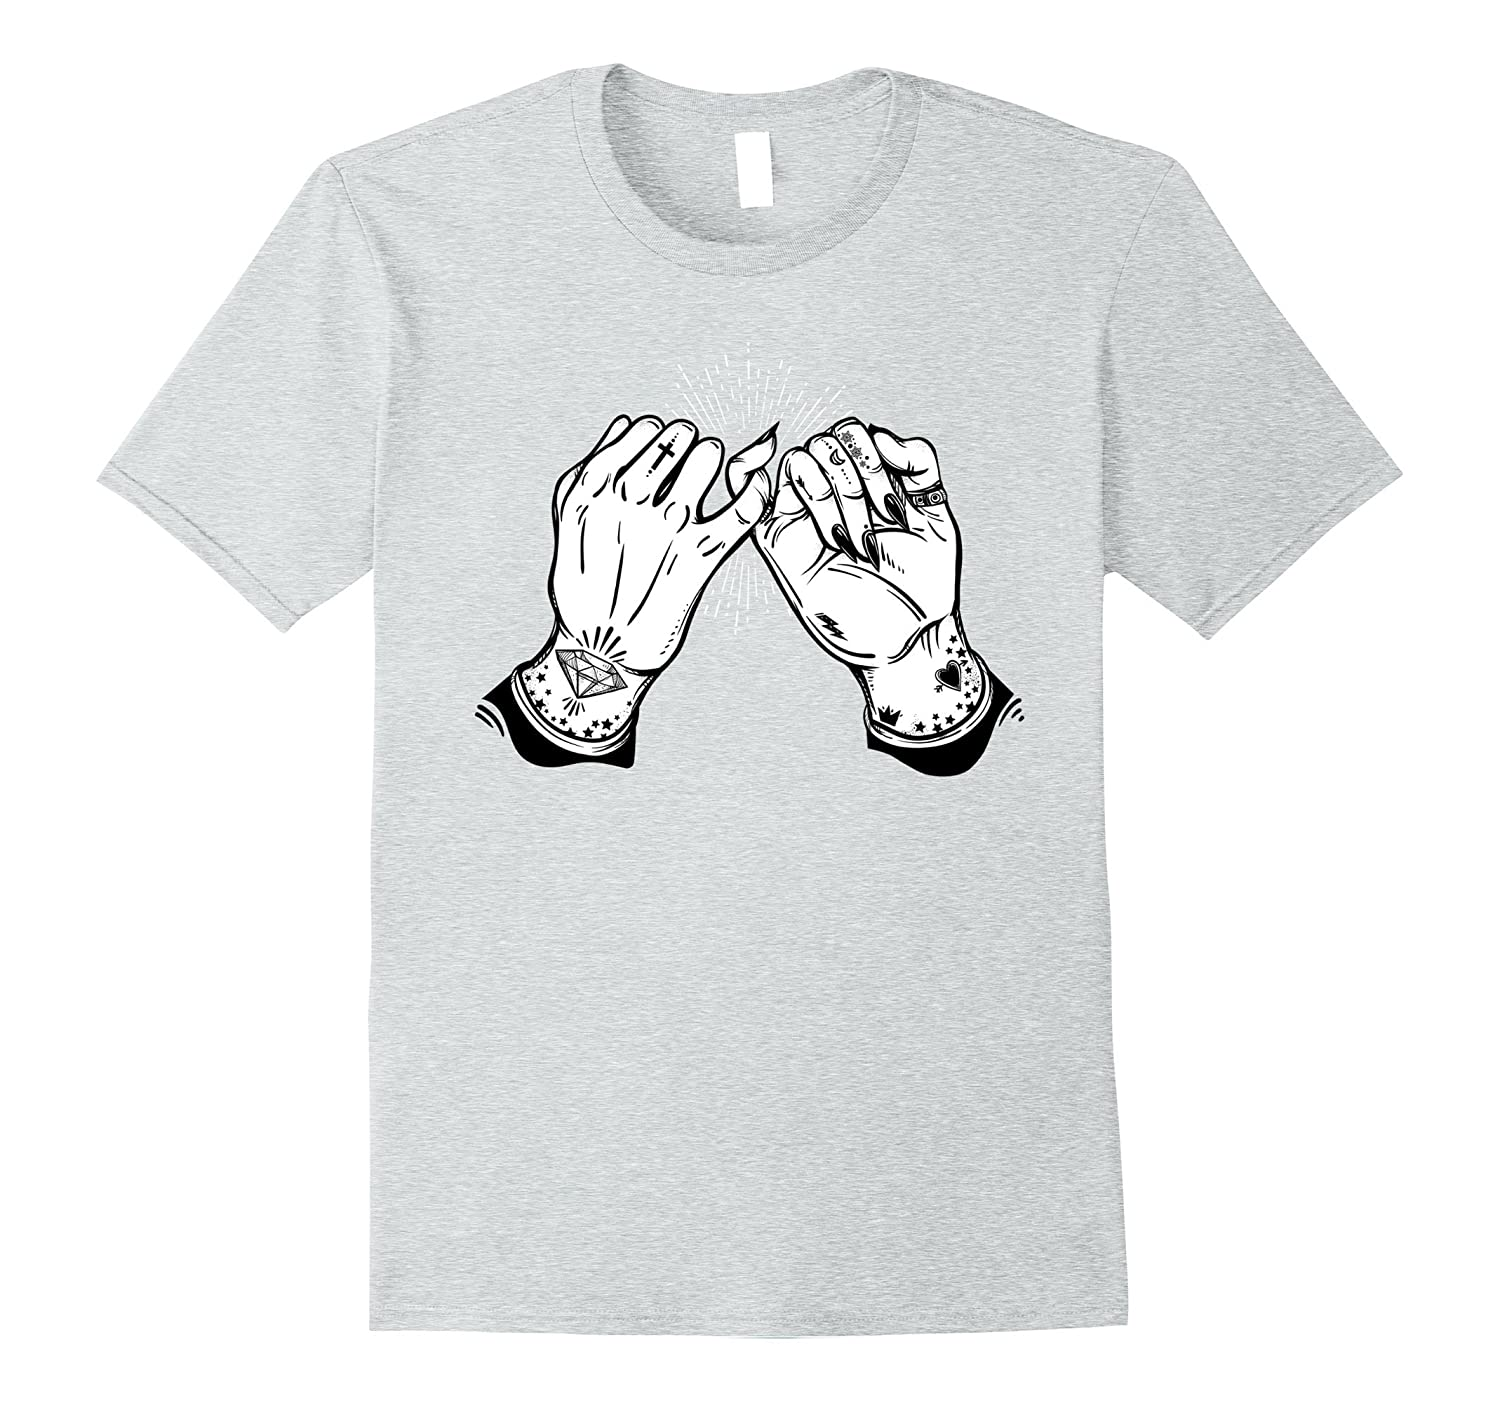 3b325fa09 Pinky Promise Tshirt - Tattoo Hands Best Friend Tee-ah my shirt one gift